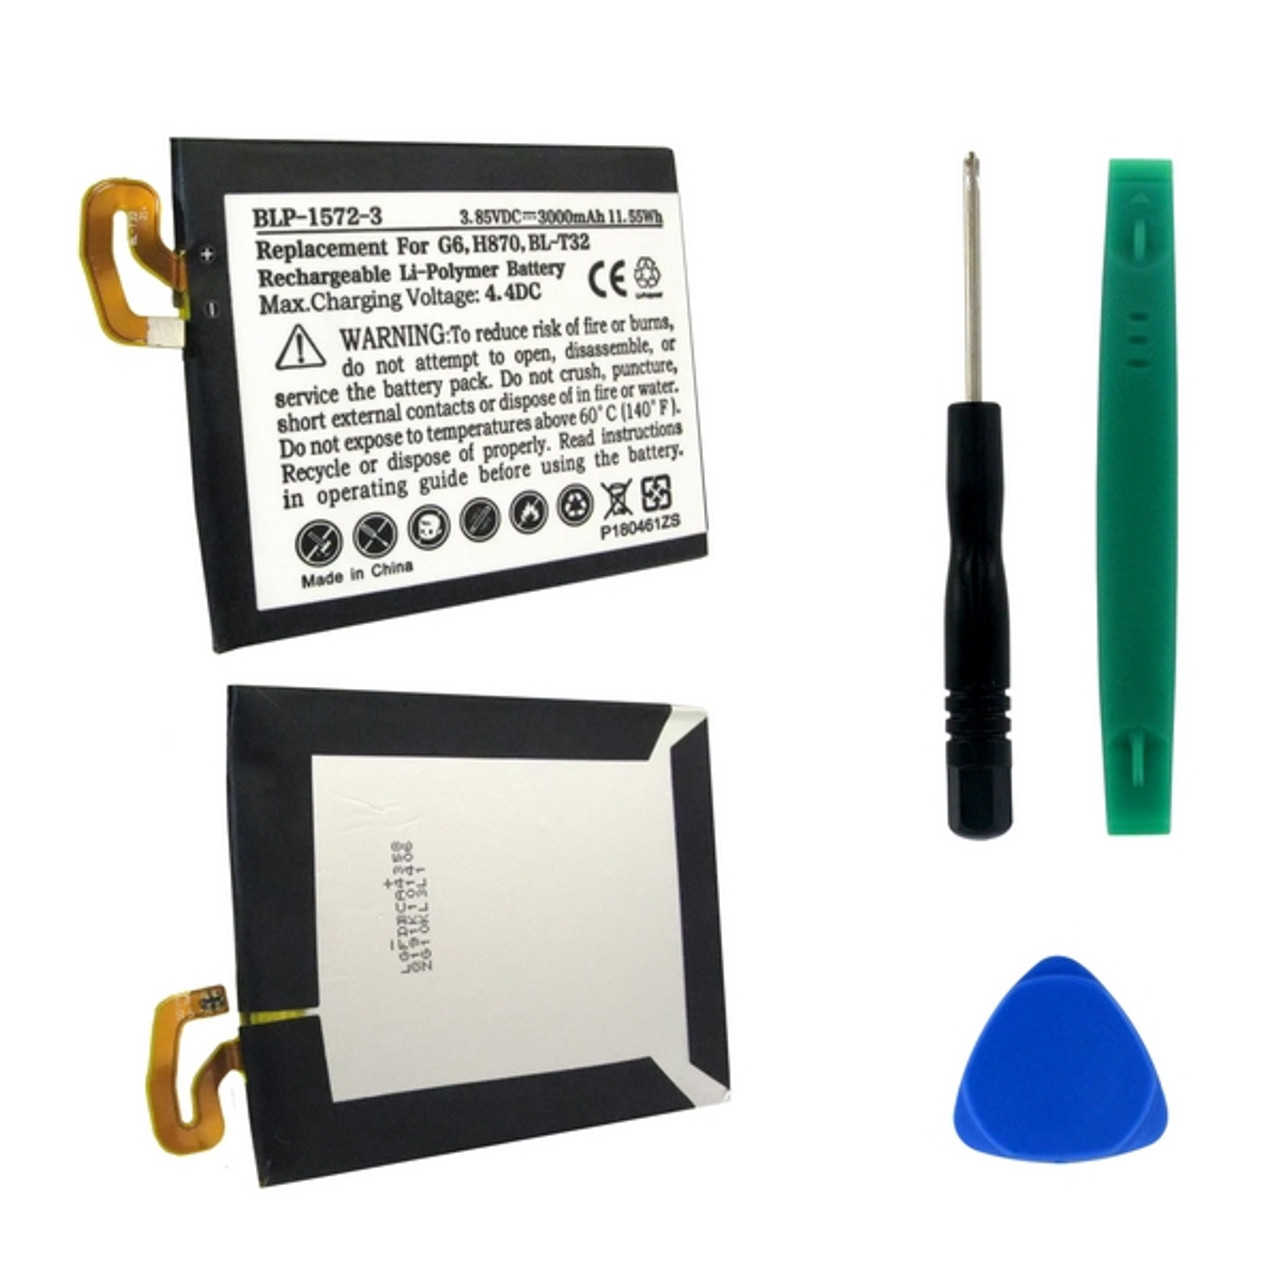 LG BL-T32 LI-POL Replacement Battery with Tools